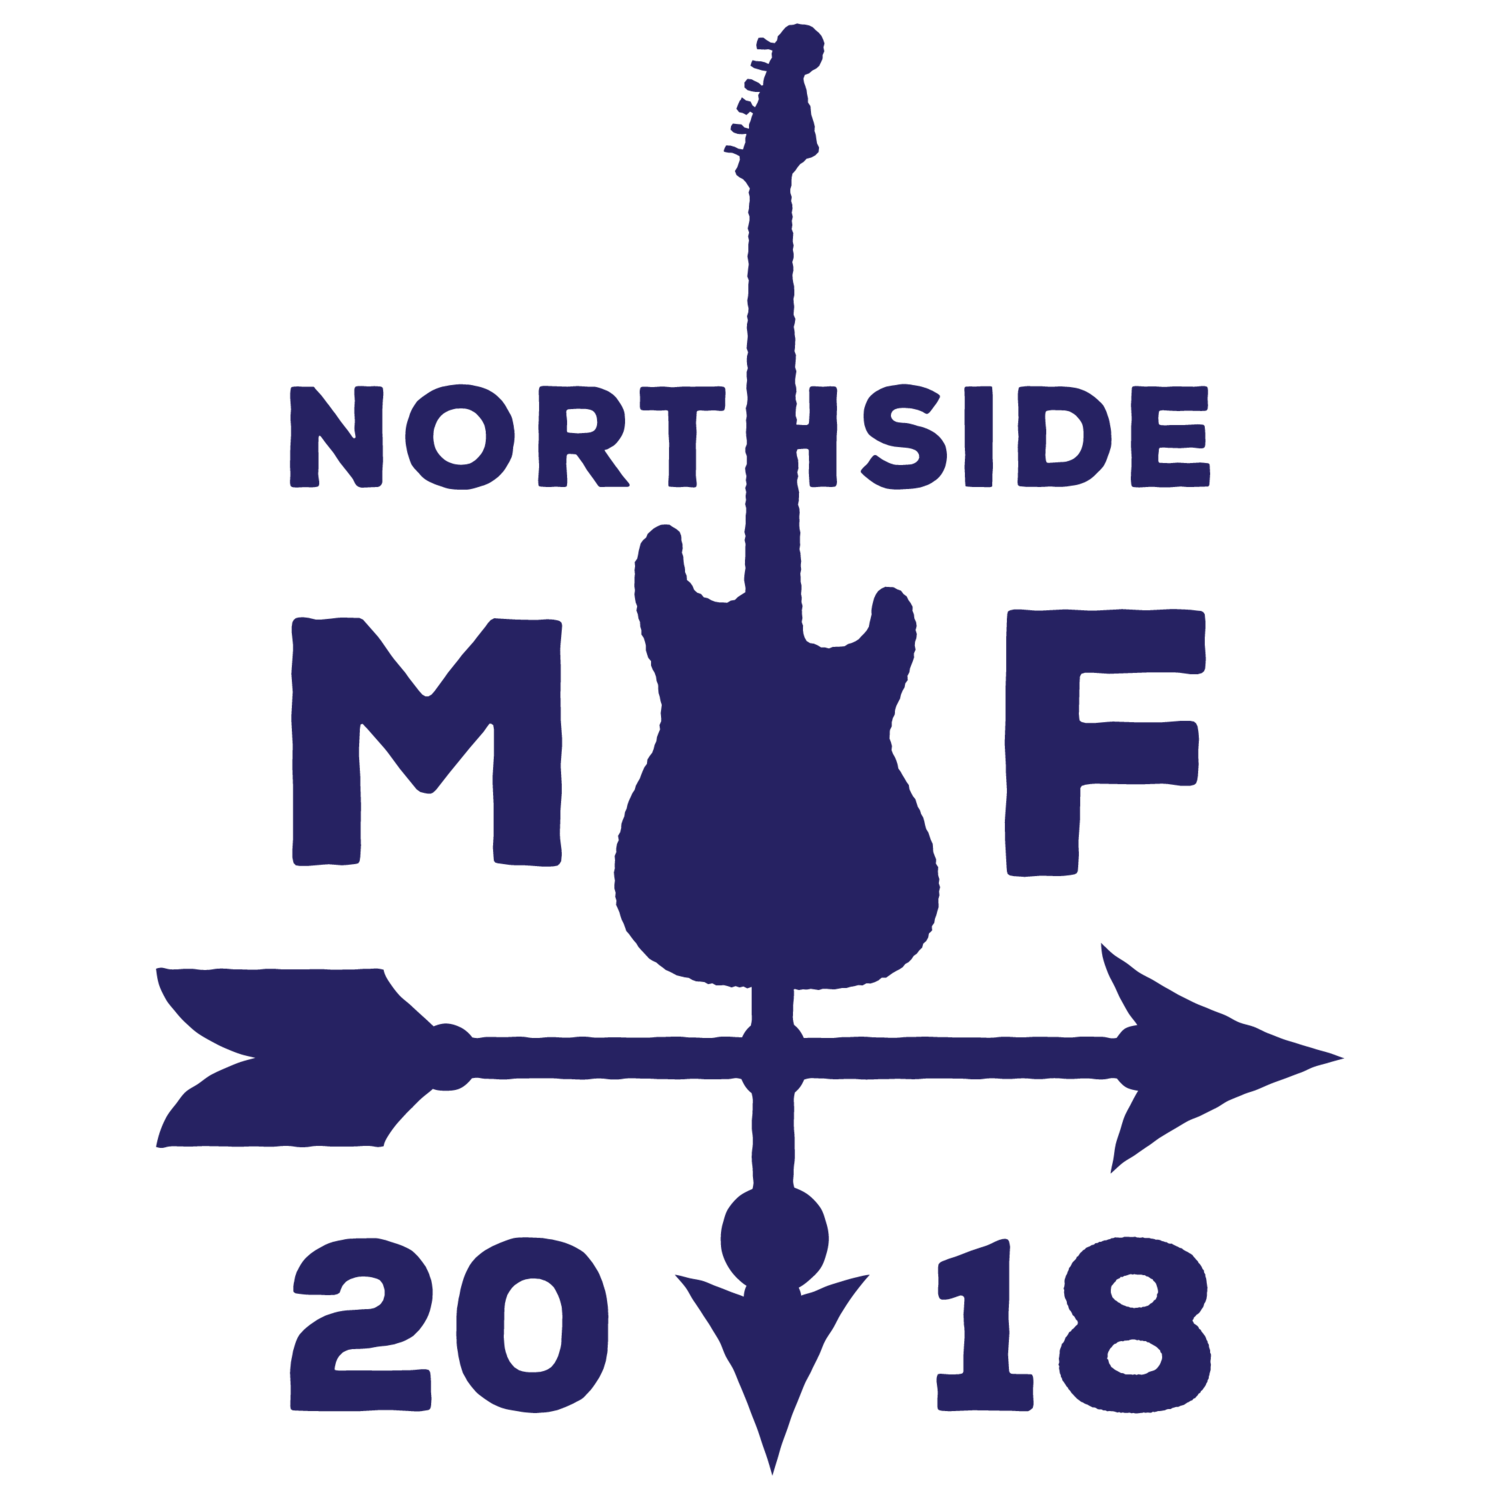 Northside Music Festival